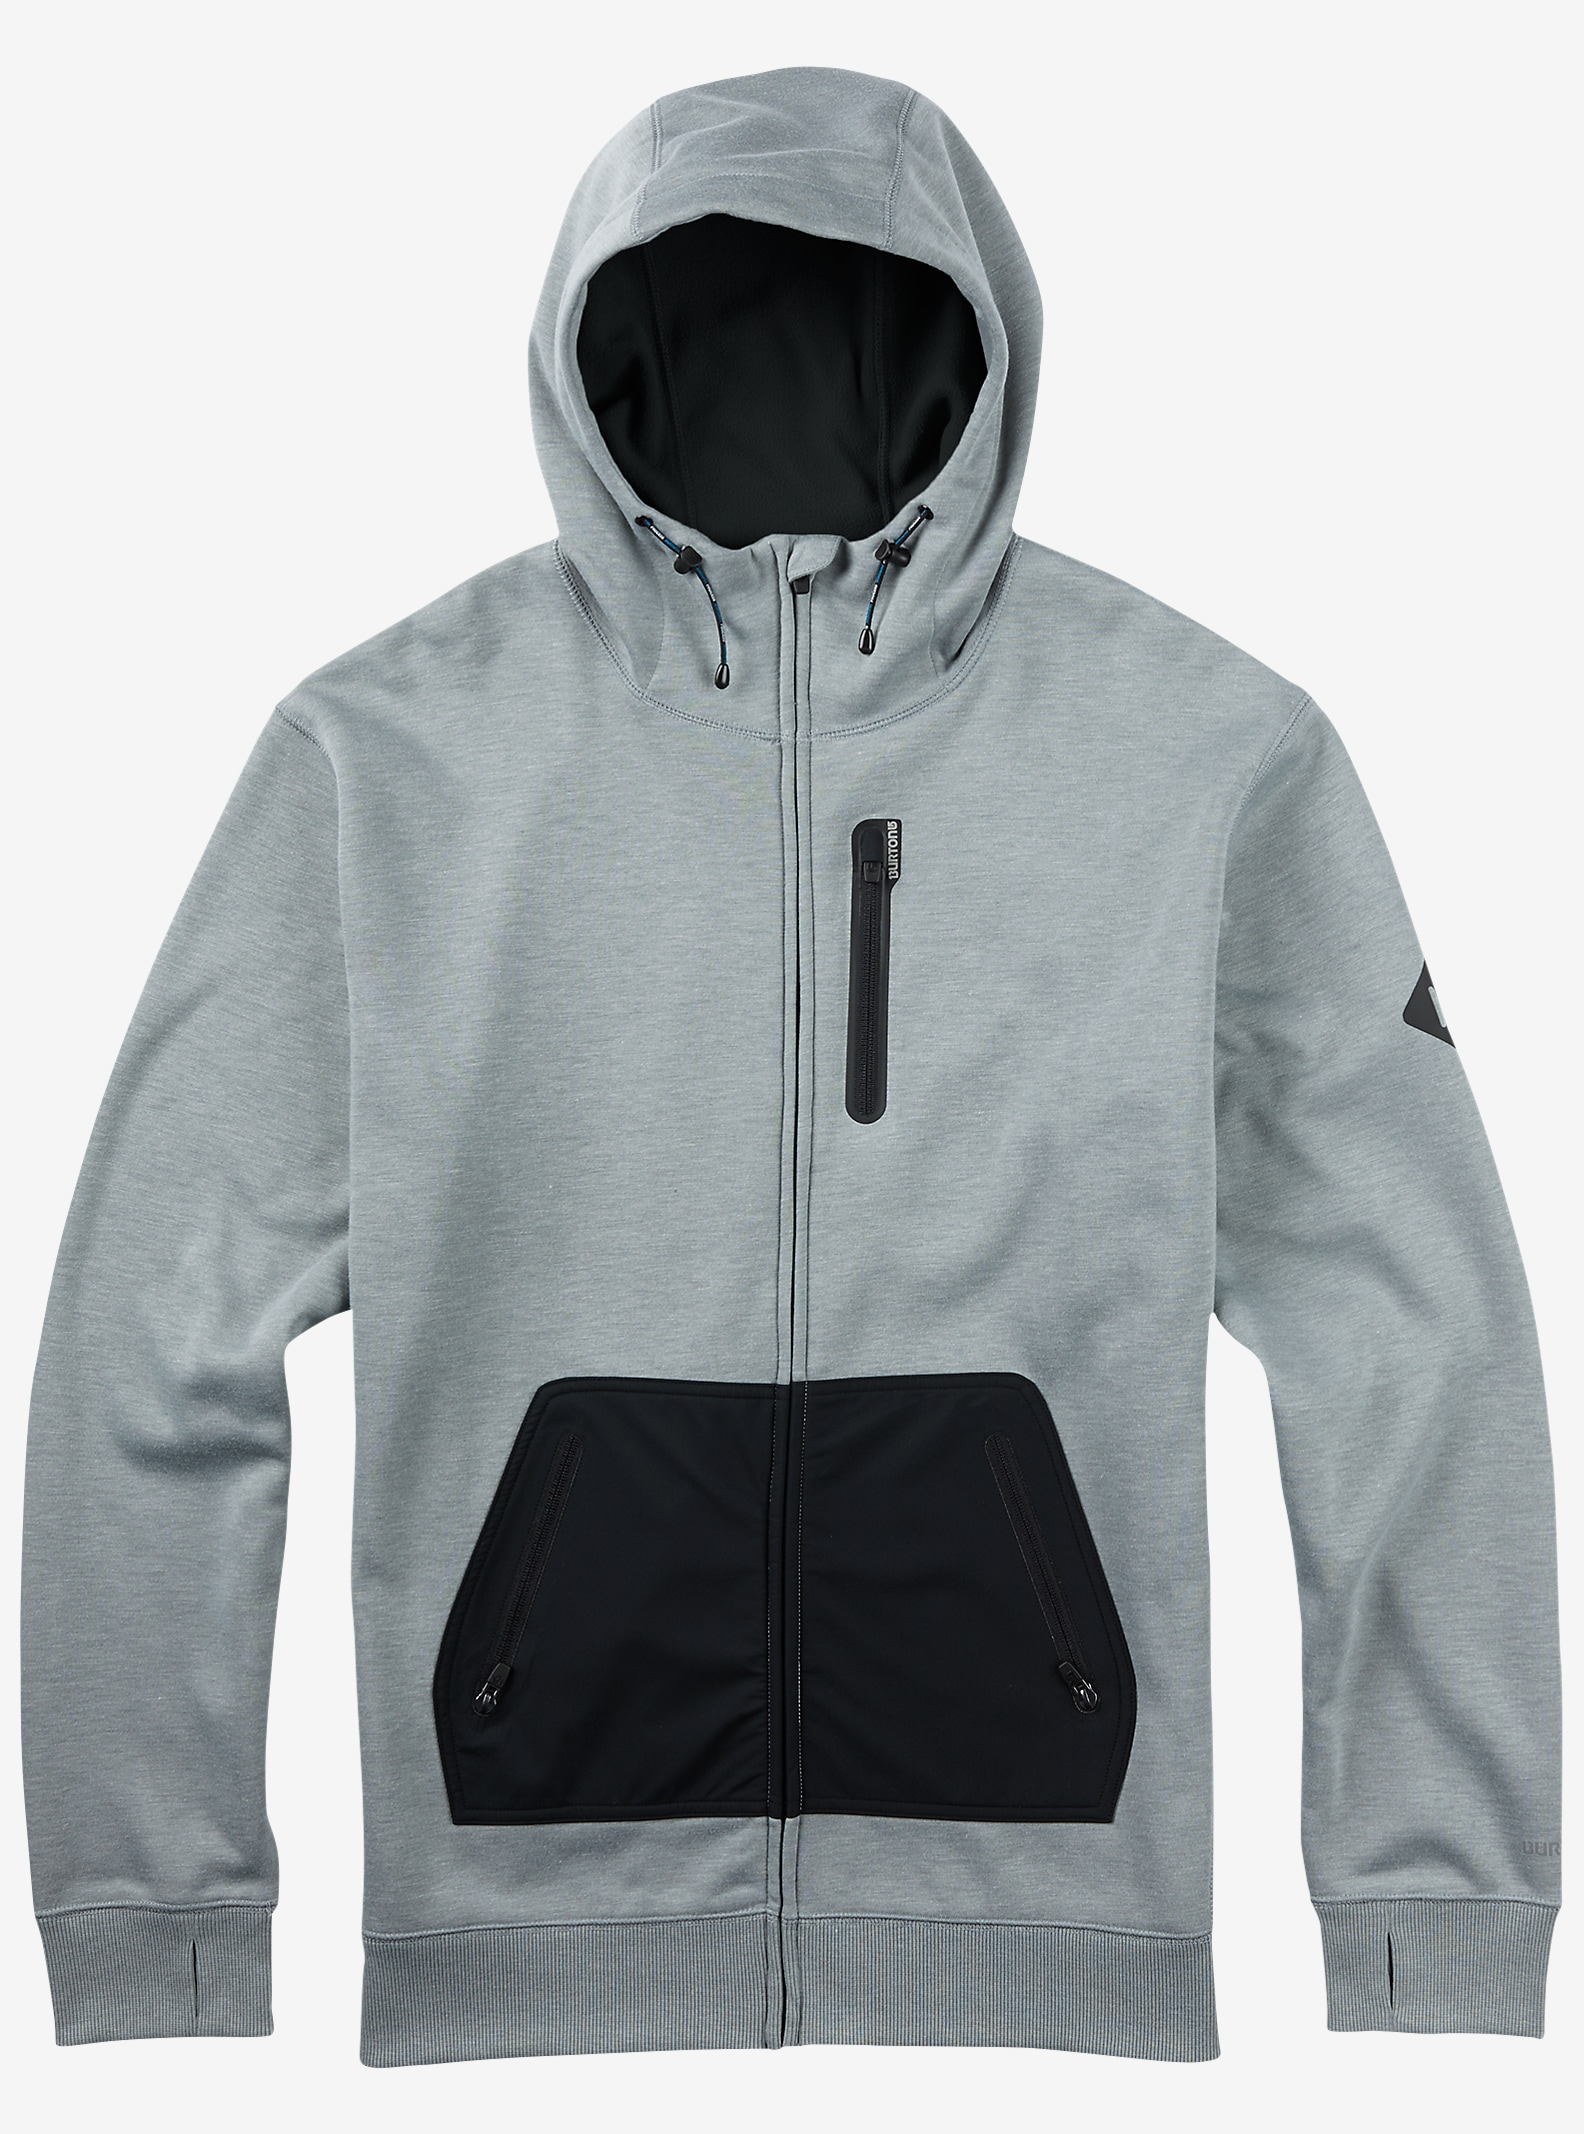 Burton Hemlock Bonded Full-Zip Hoodie shown in Monument Heather